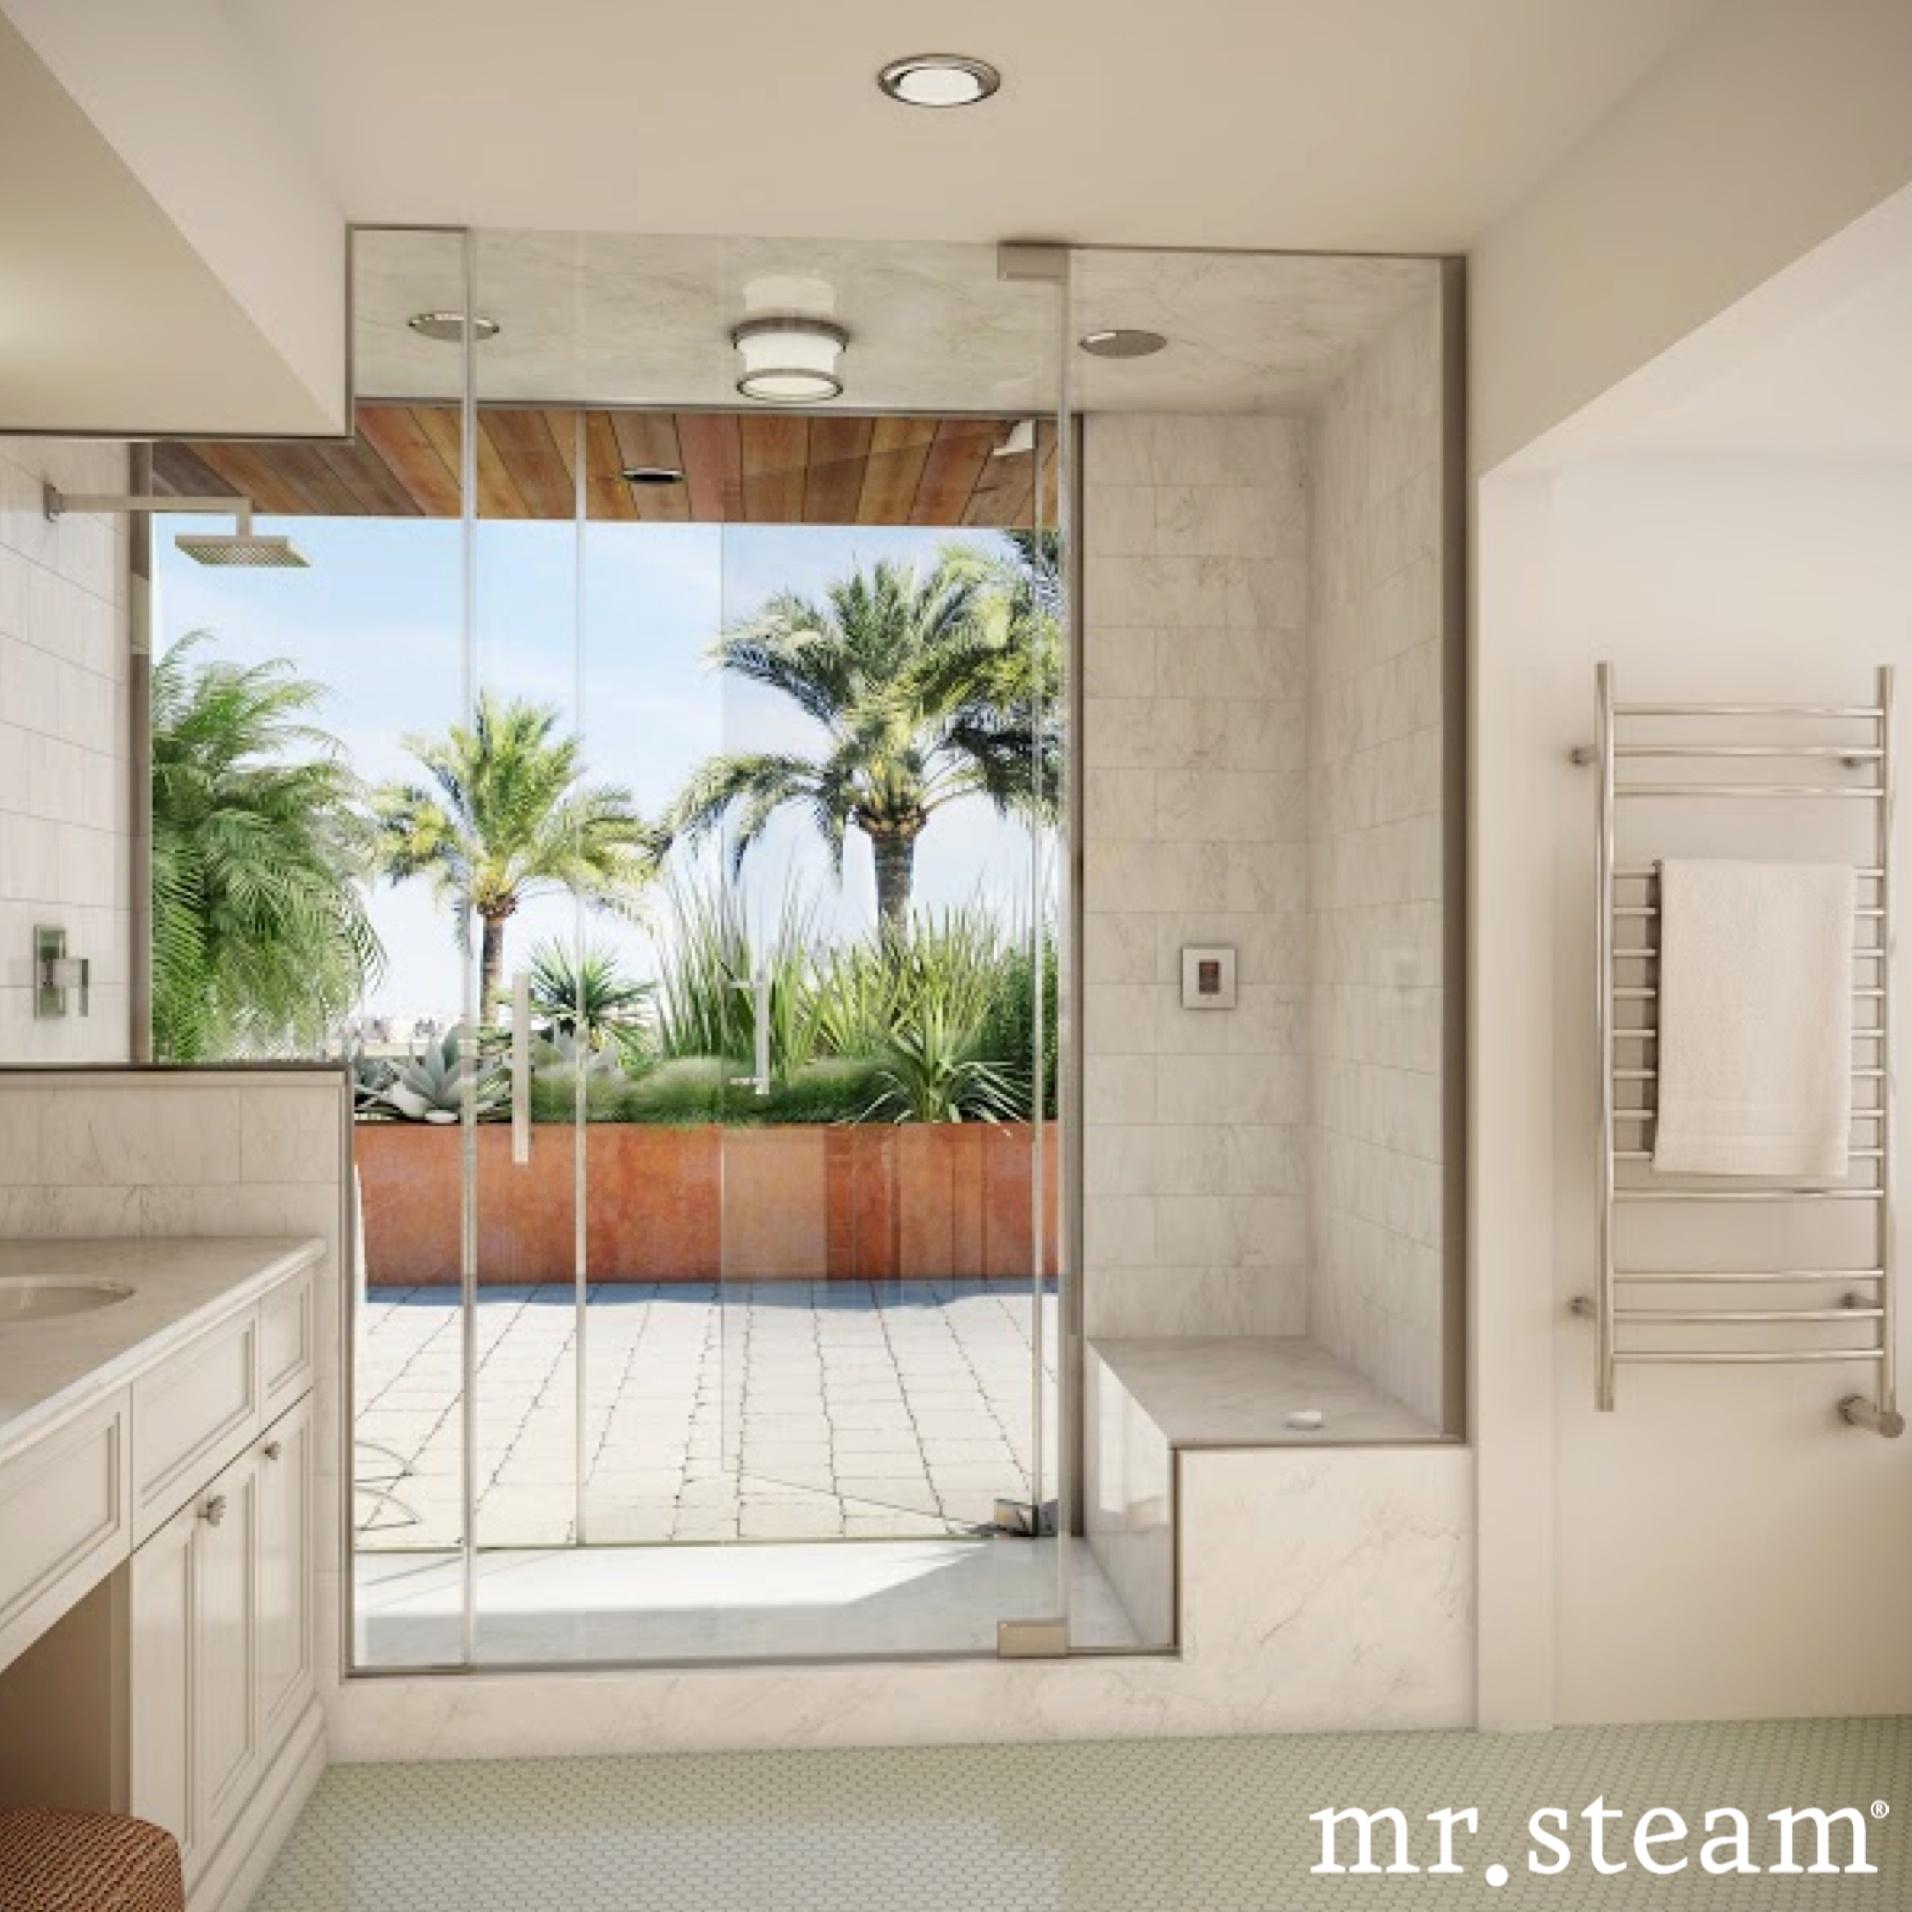 Will Your Home Steam Shower Add Resale Value?